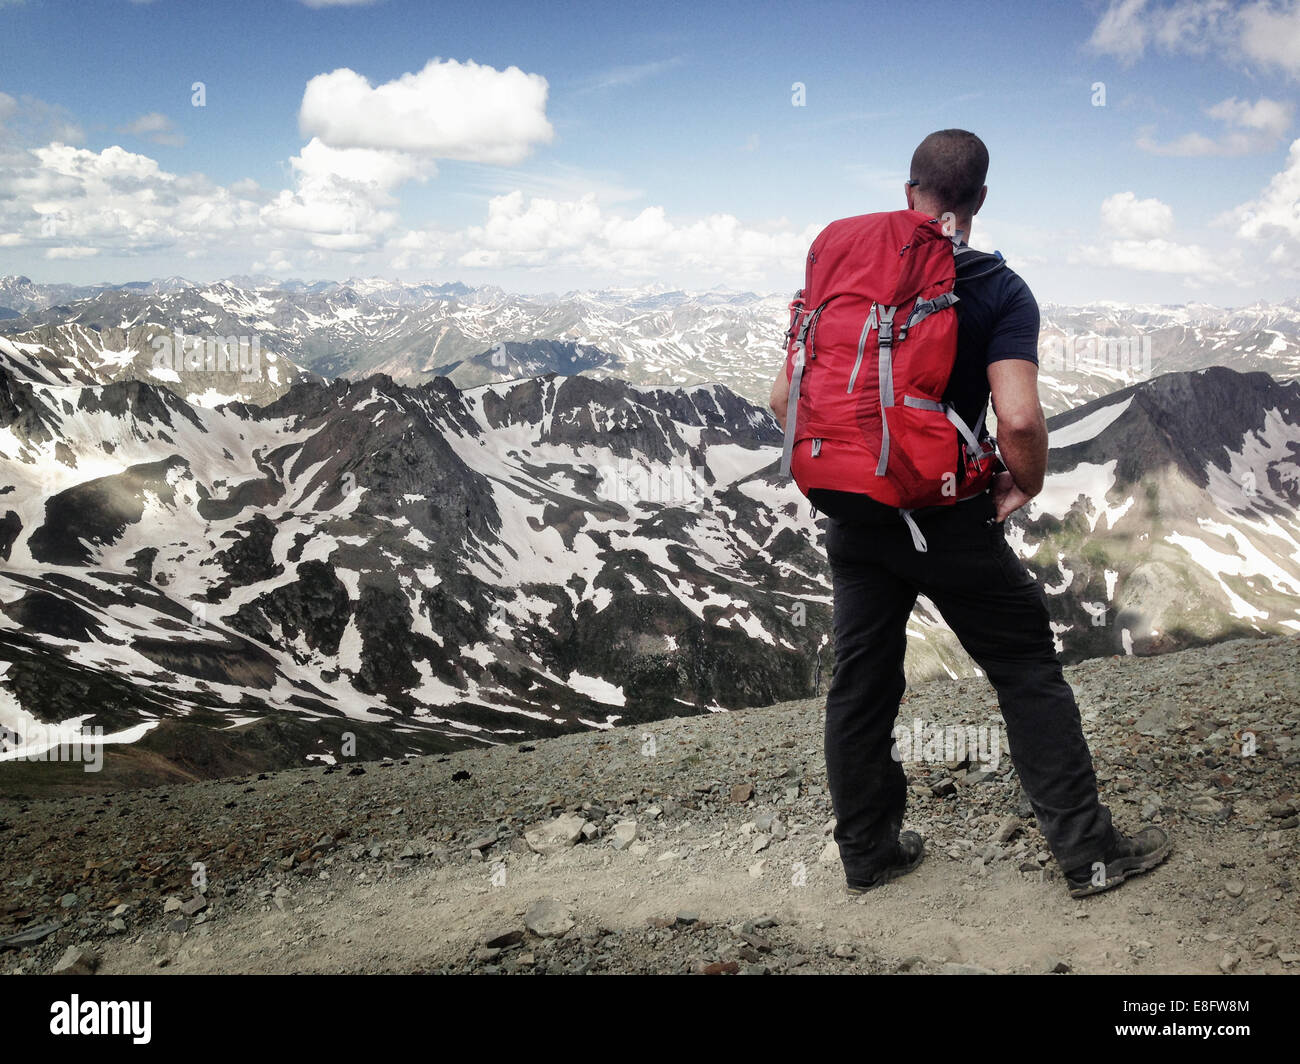 Hiker looking at mountain view, Colorado, America, USA - Stock Image